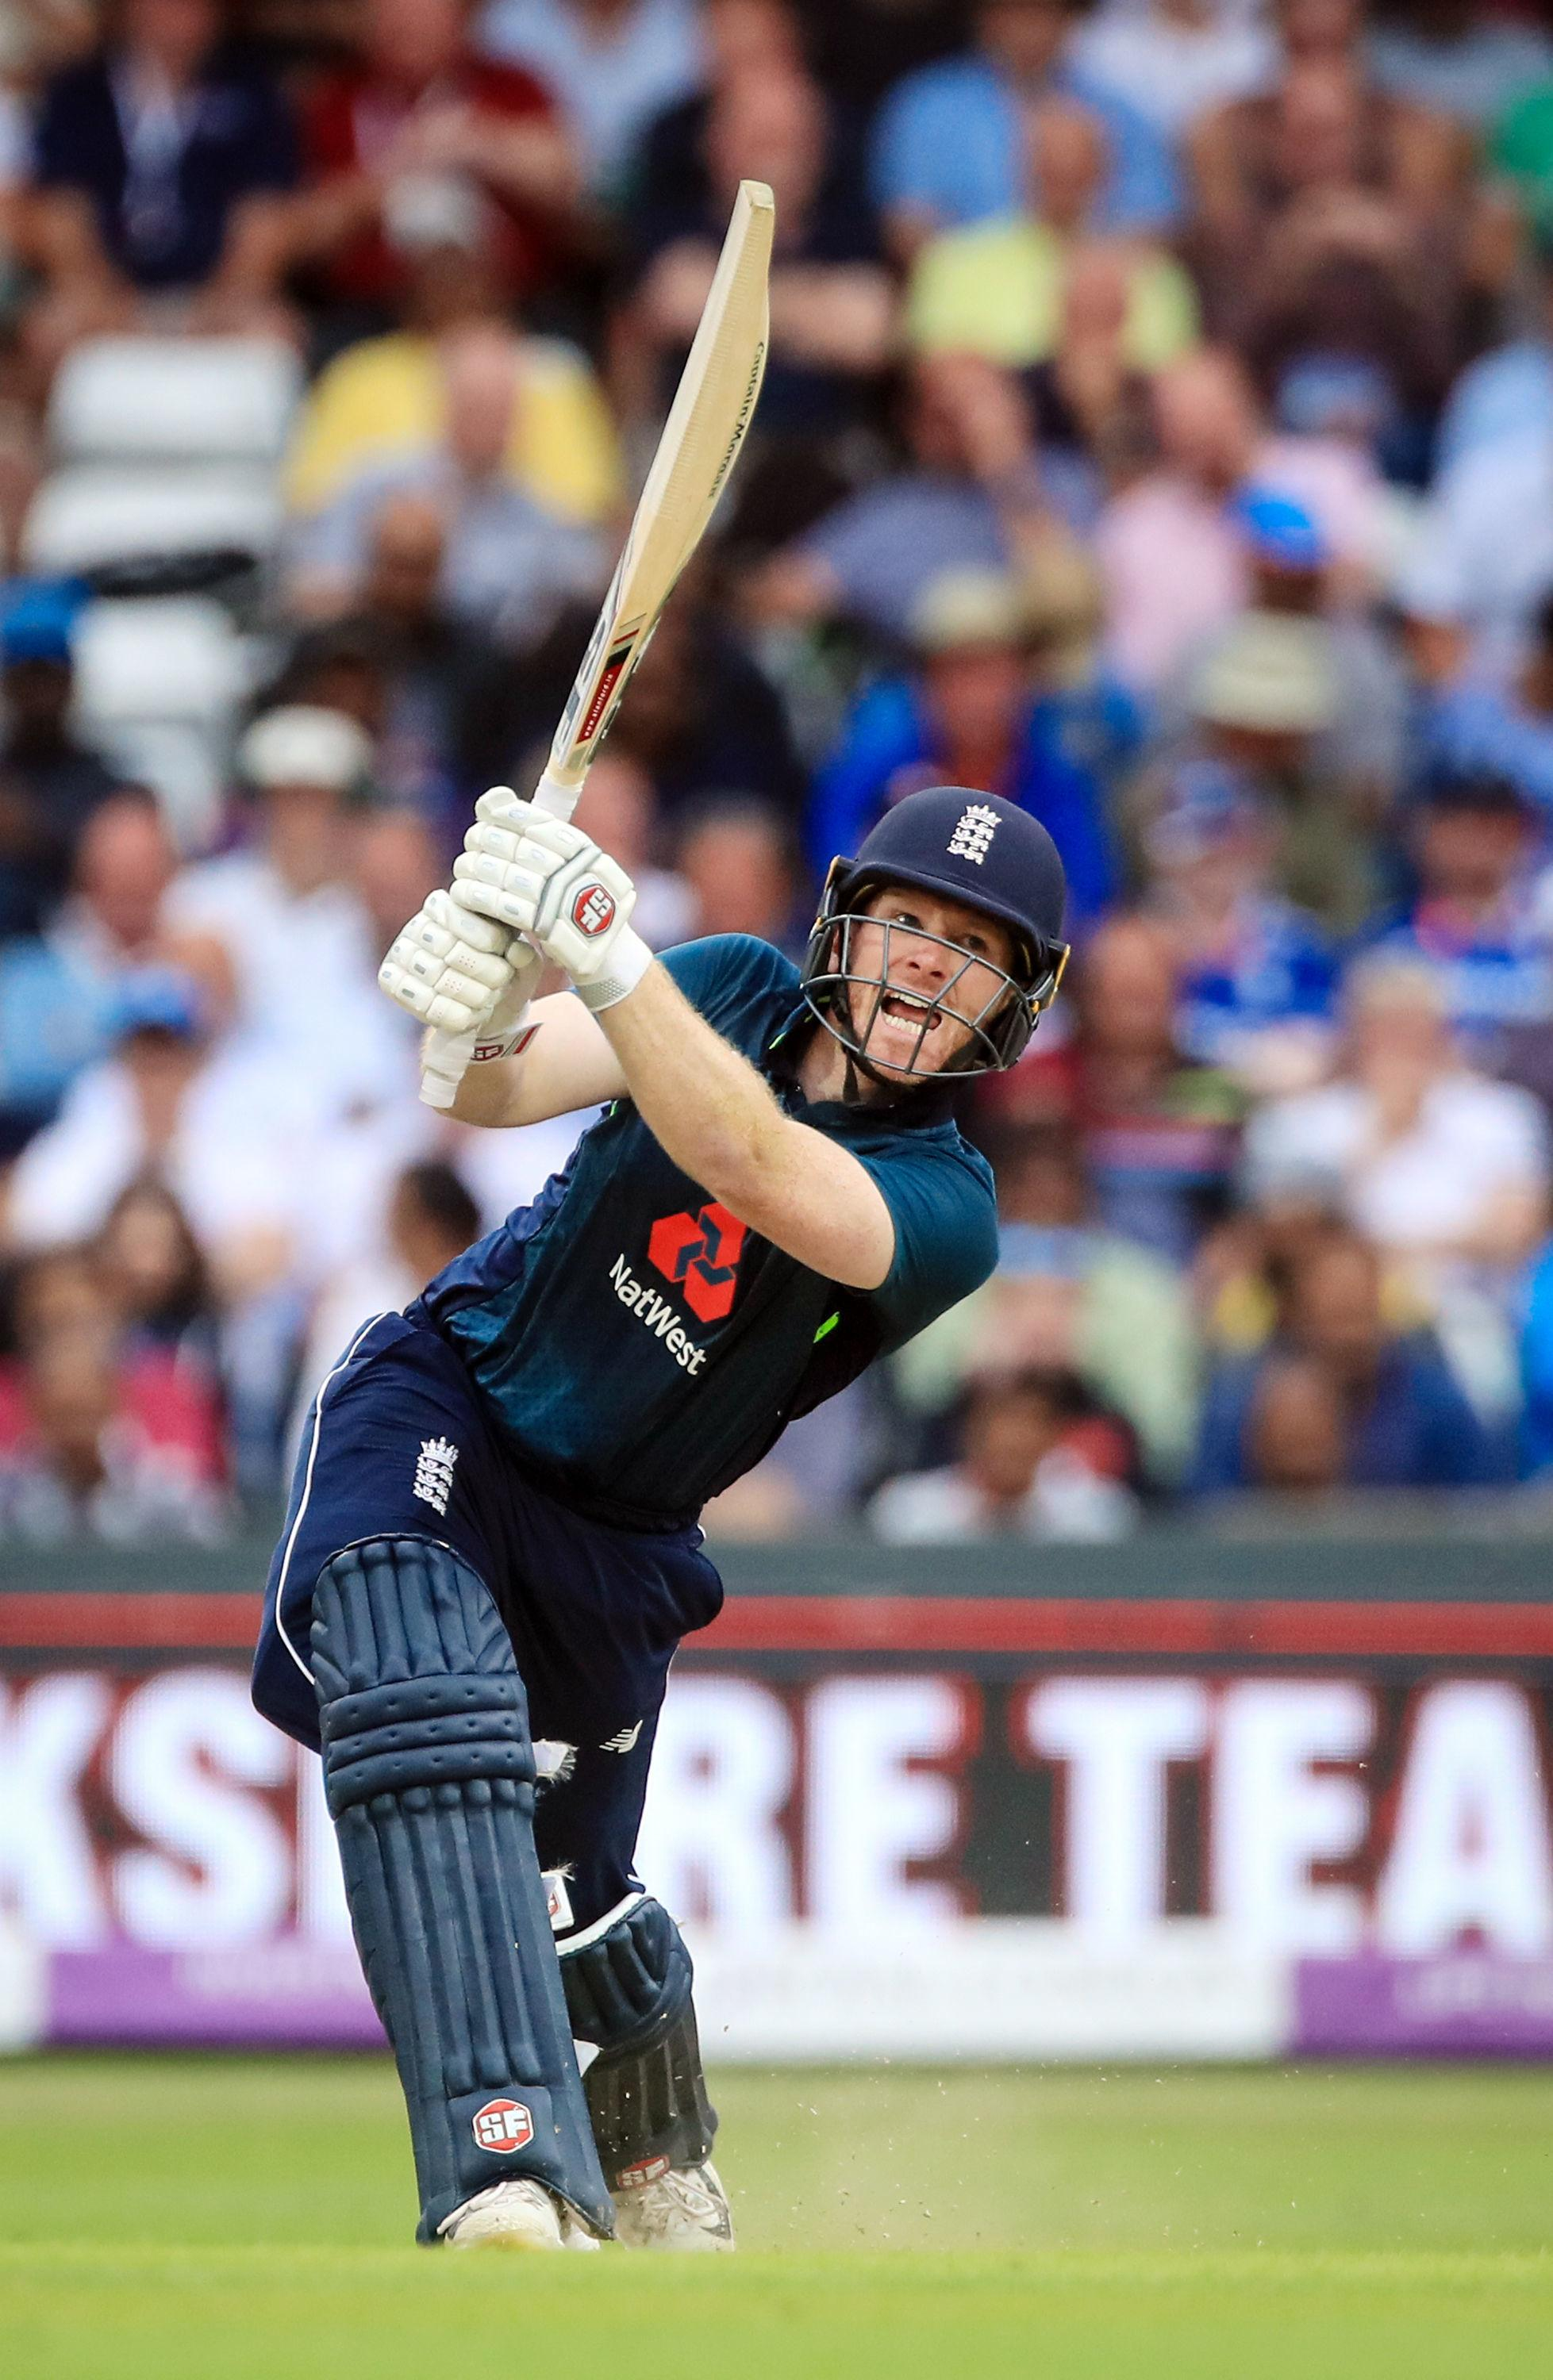 Morgan played a captain's knock of 88 not out to help England get over the line